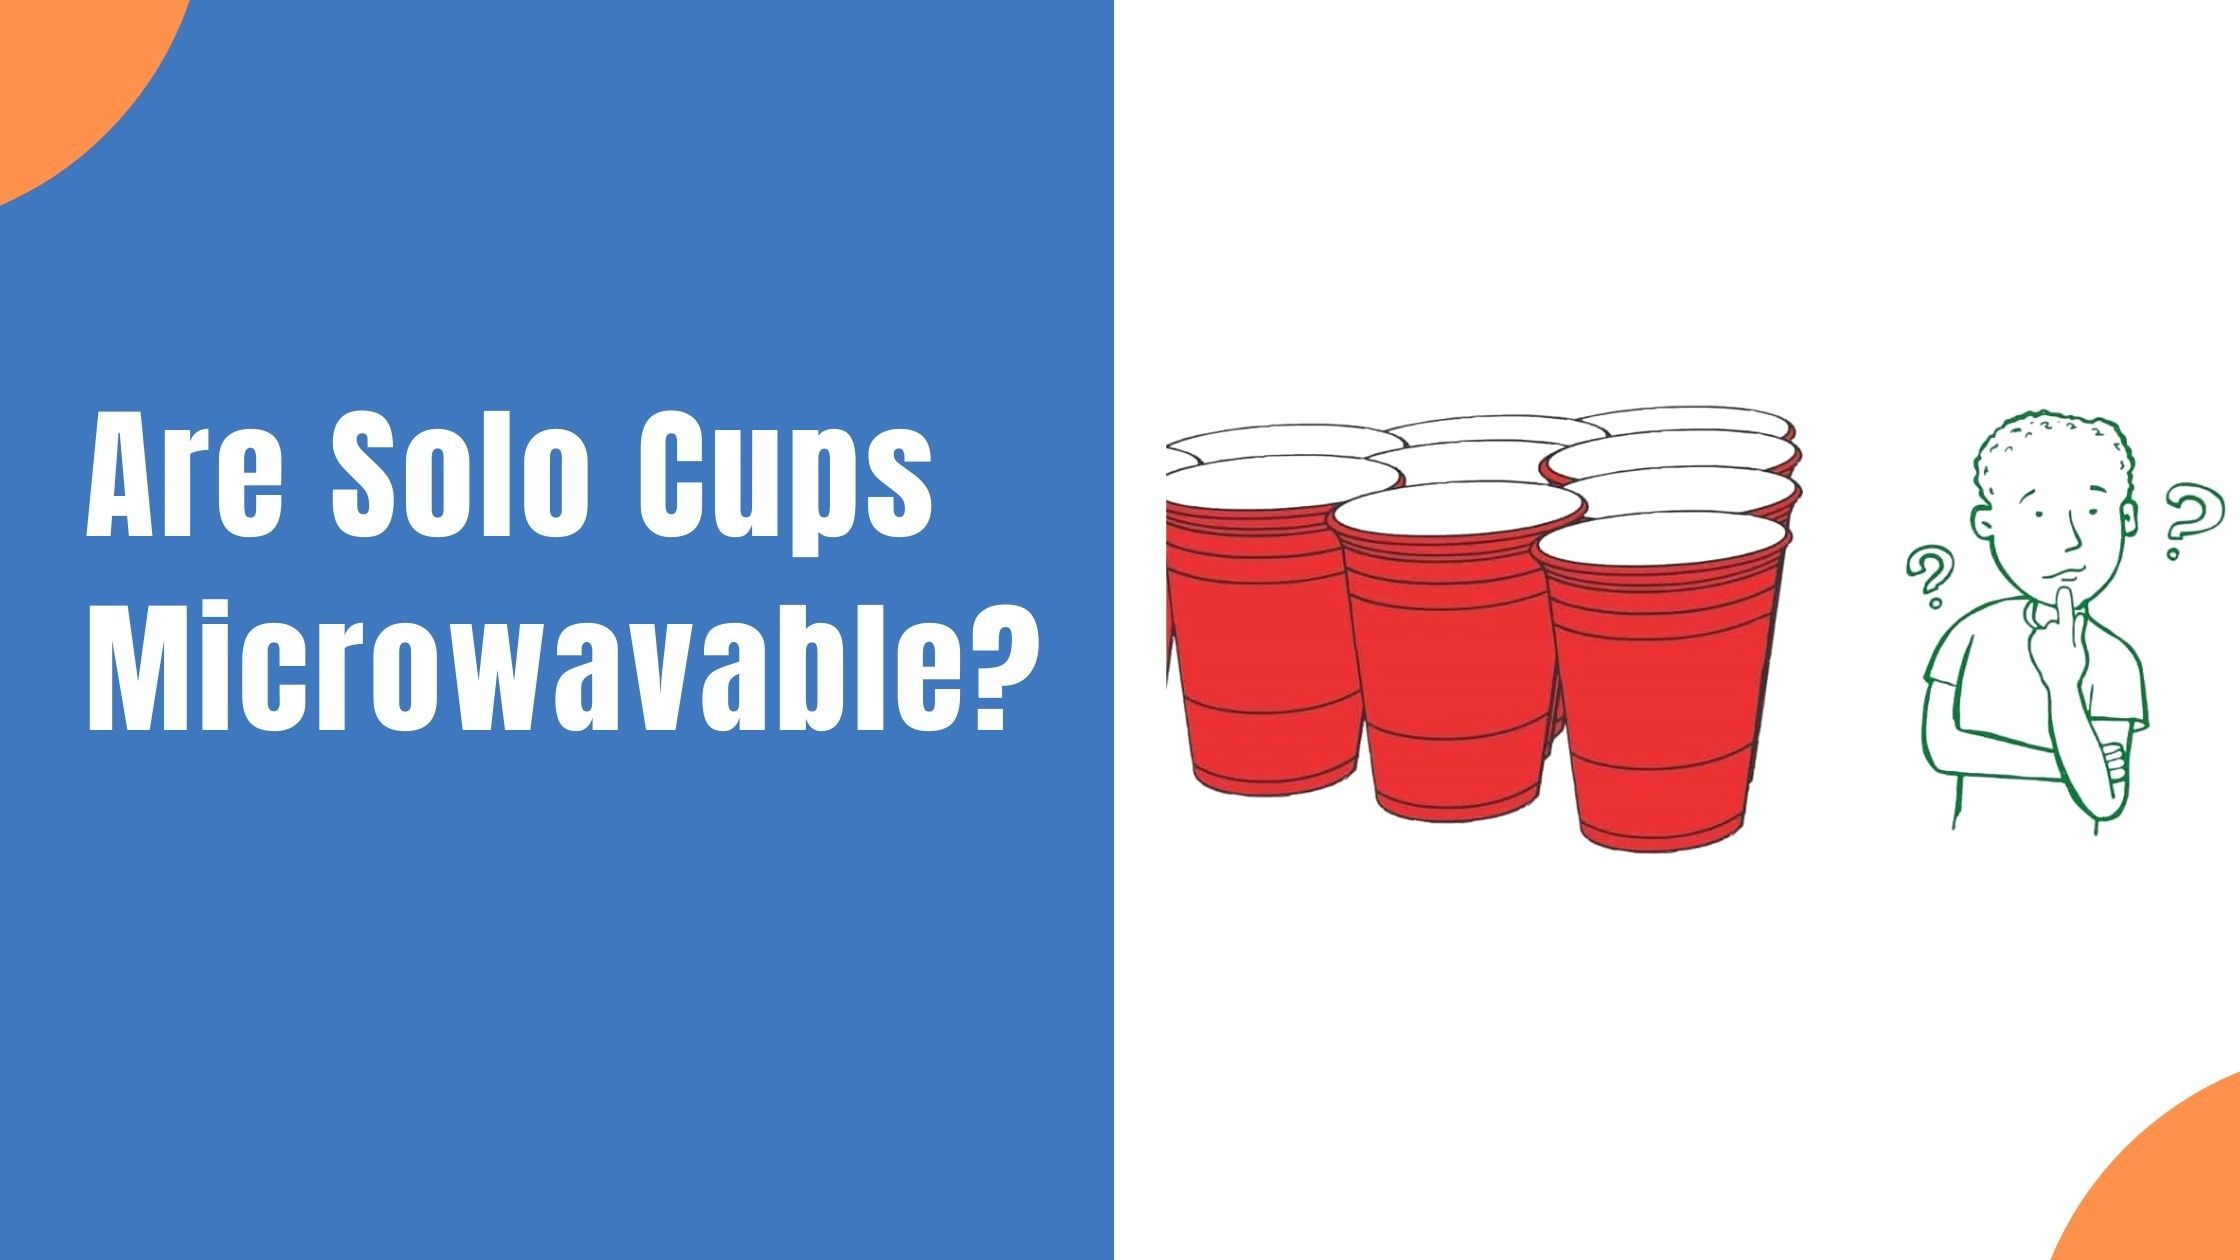 Are Solo Cups Microwavable